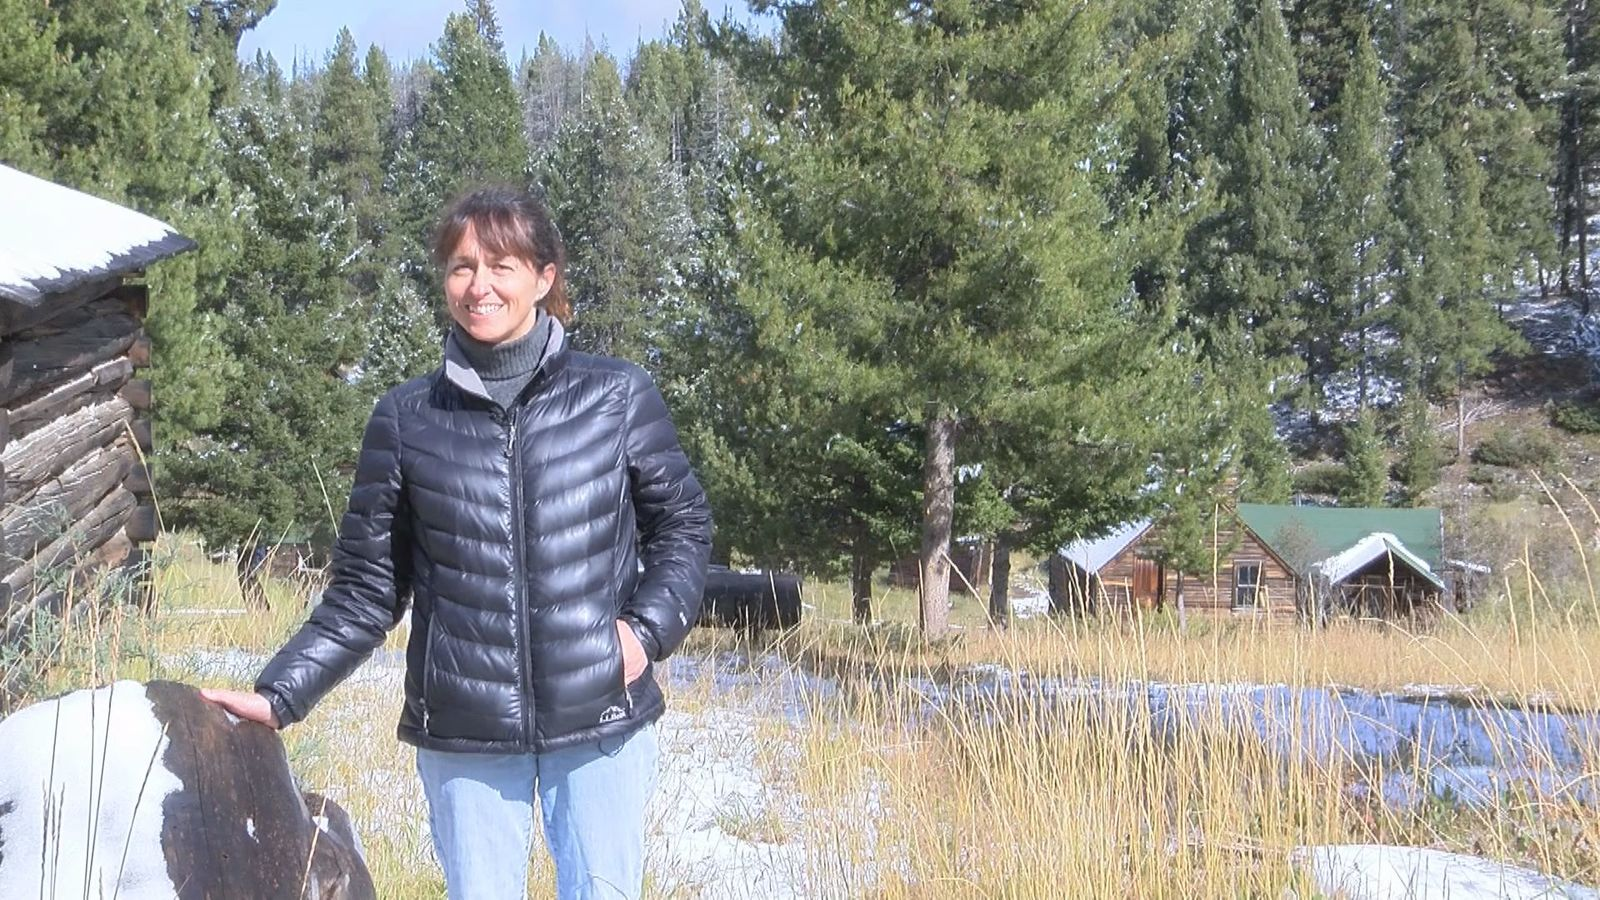 Maria Craig is an outdoor recreation planner and archaeologist with BLM.{ } Garnet is an important place for students of history, archaeology, mining and Montana culture.